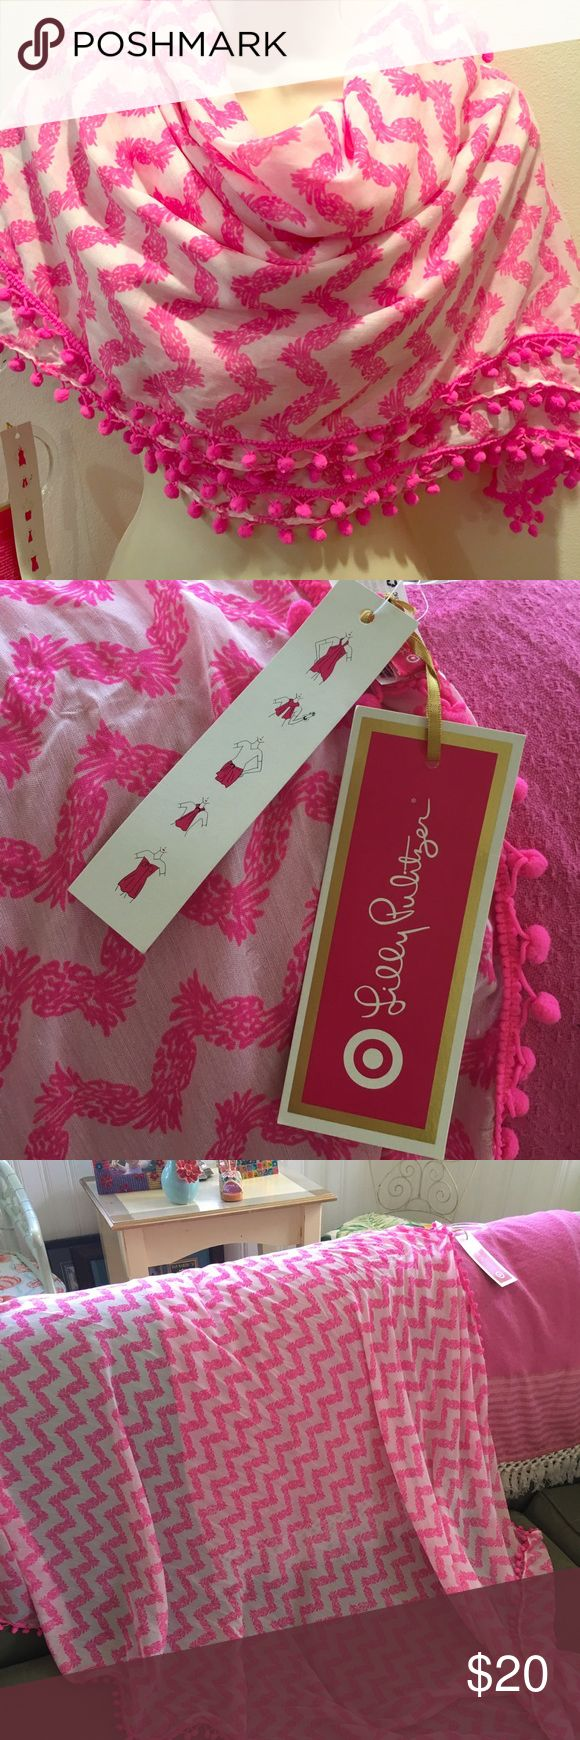 """Lilly Pulitzer for Target pineapple scarf New with tags, pink pineapple print scarf. This is a large scarf that can be used for a sarong, beach cover-up, even a table cloth, in addition to the traditional neck scarf. Measures 43""""x70"""" Lilly Pulitzer Accessories Scarves & Wraps"""